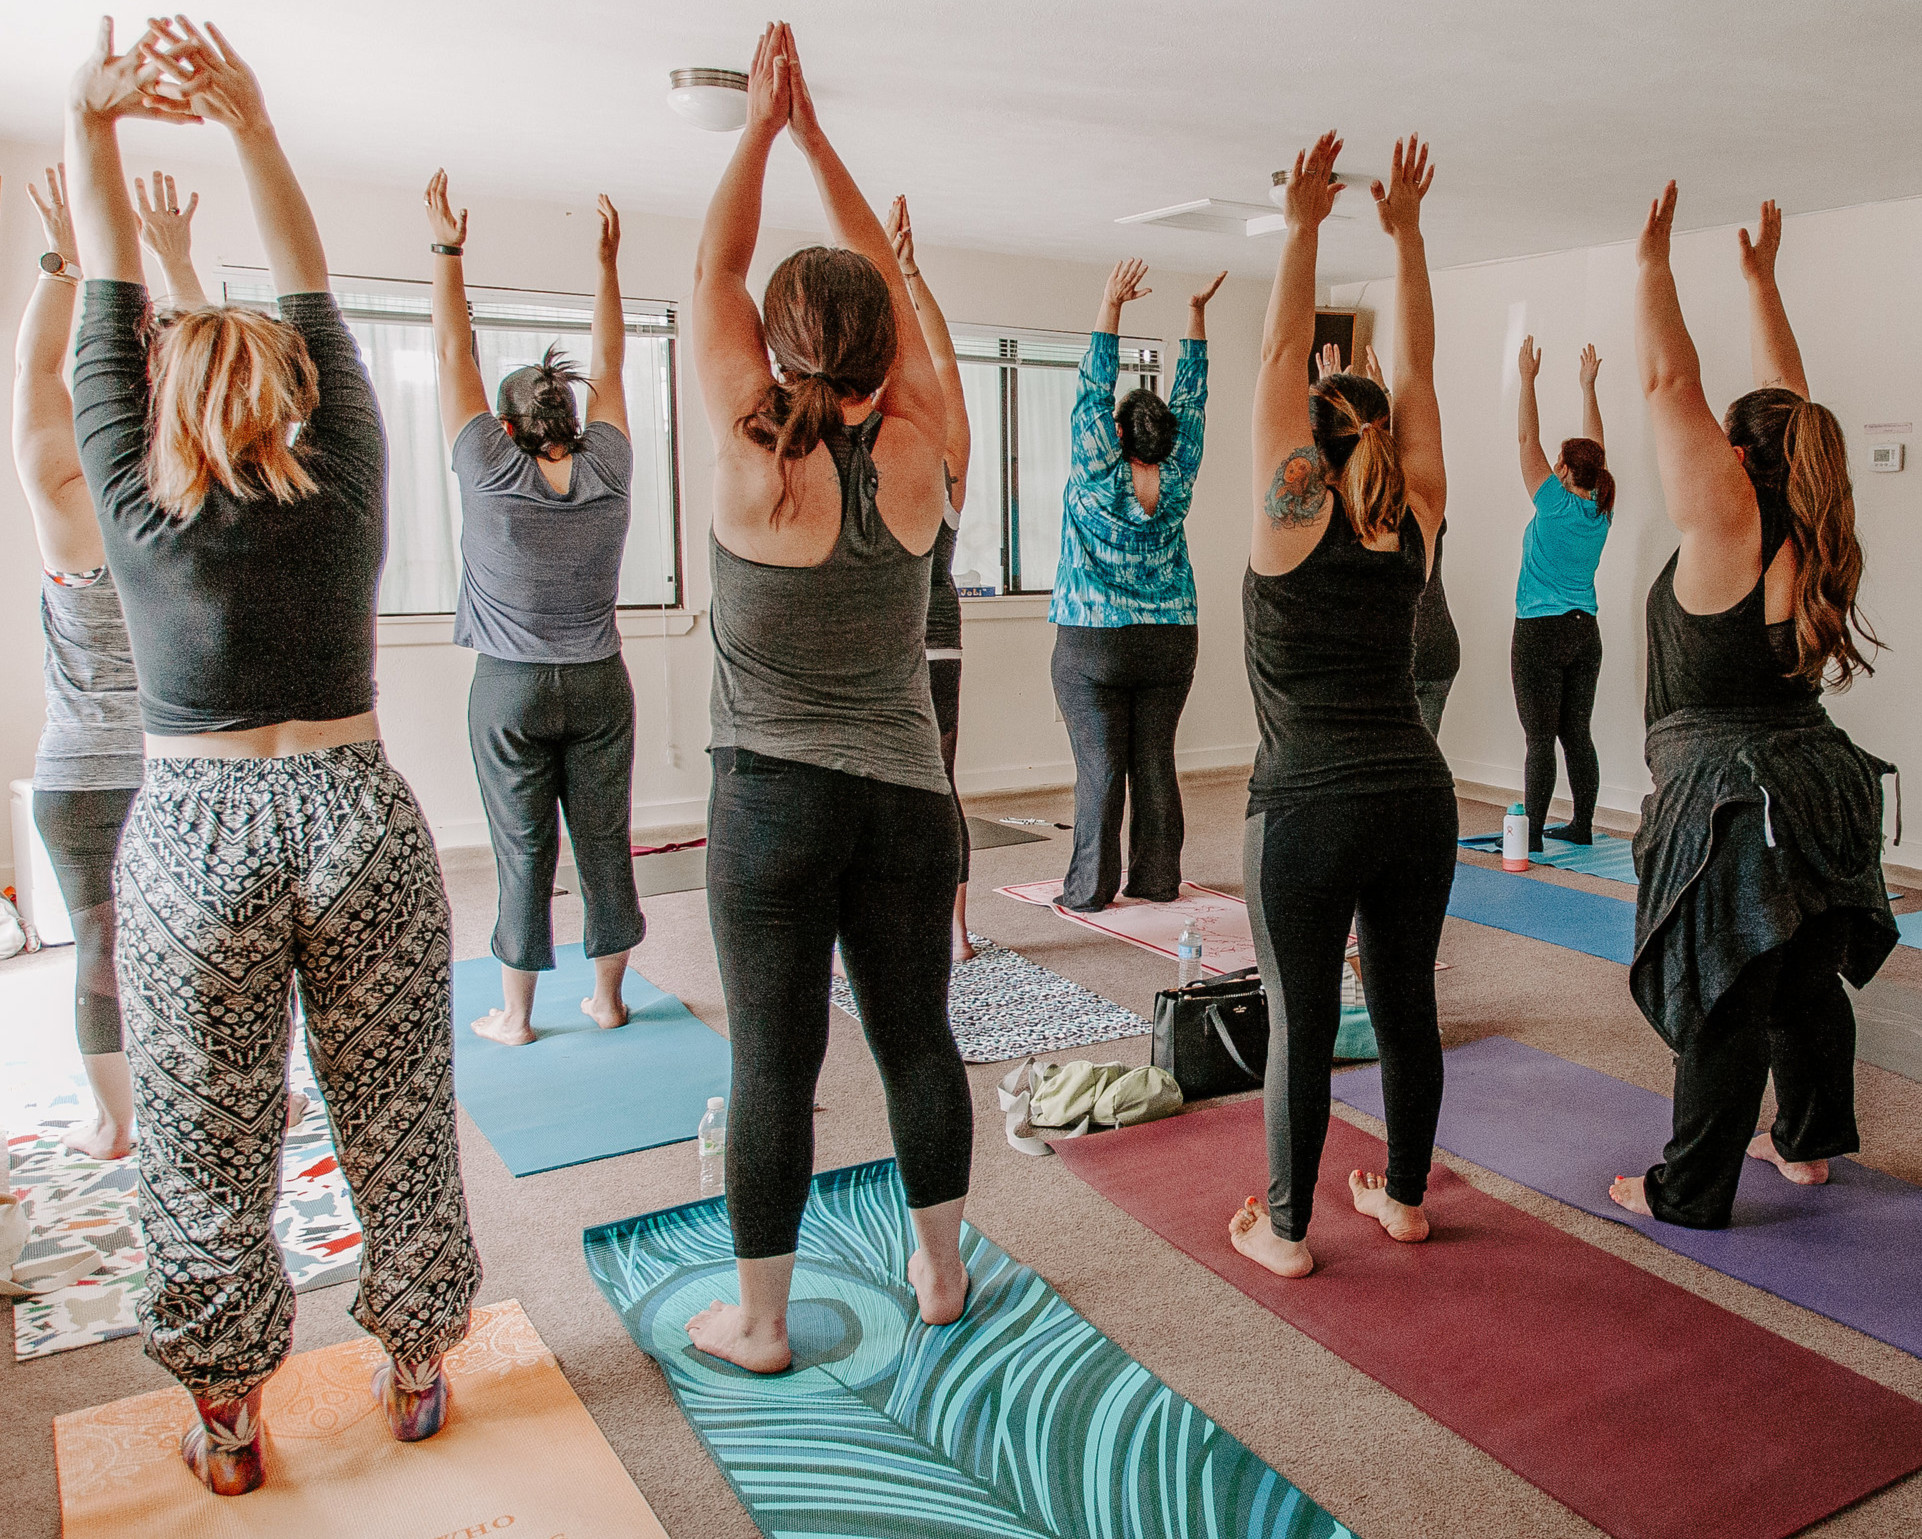 women stretching during light yoga by rast yogi at self-care event by kim baker beauty san jose california makeup artist photo by catie belle photography